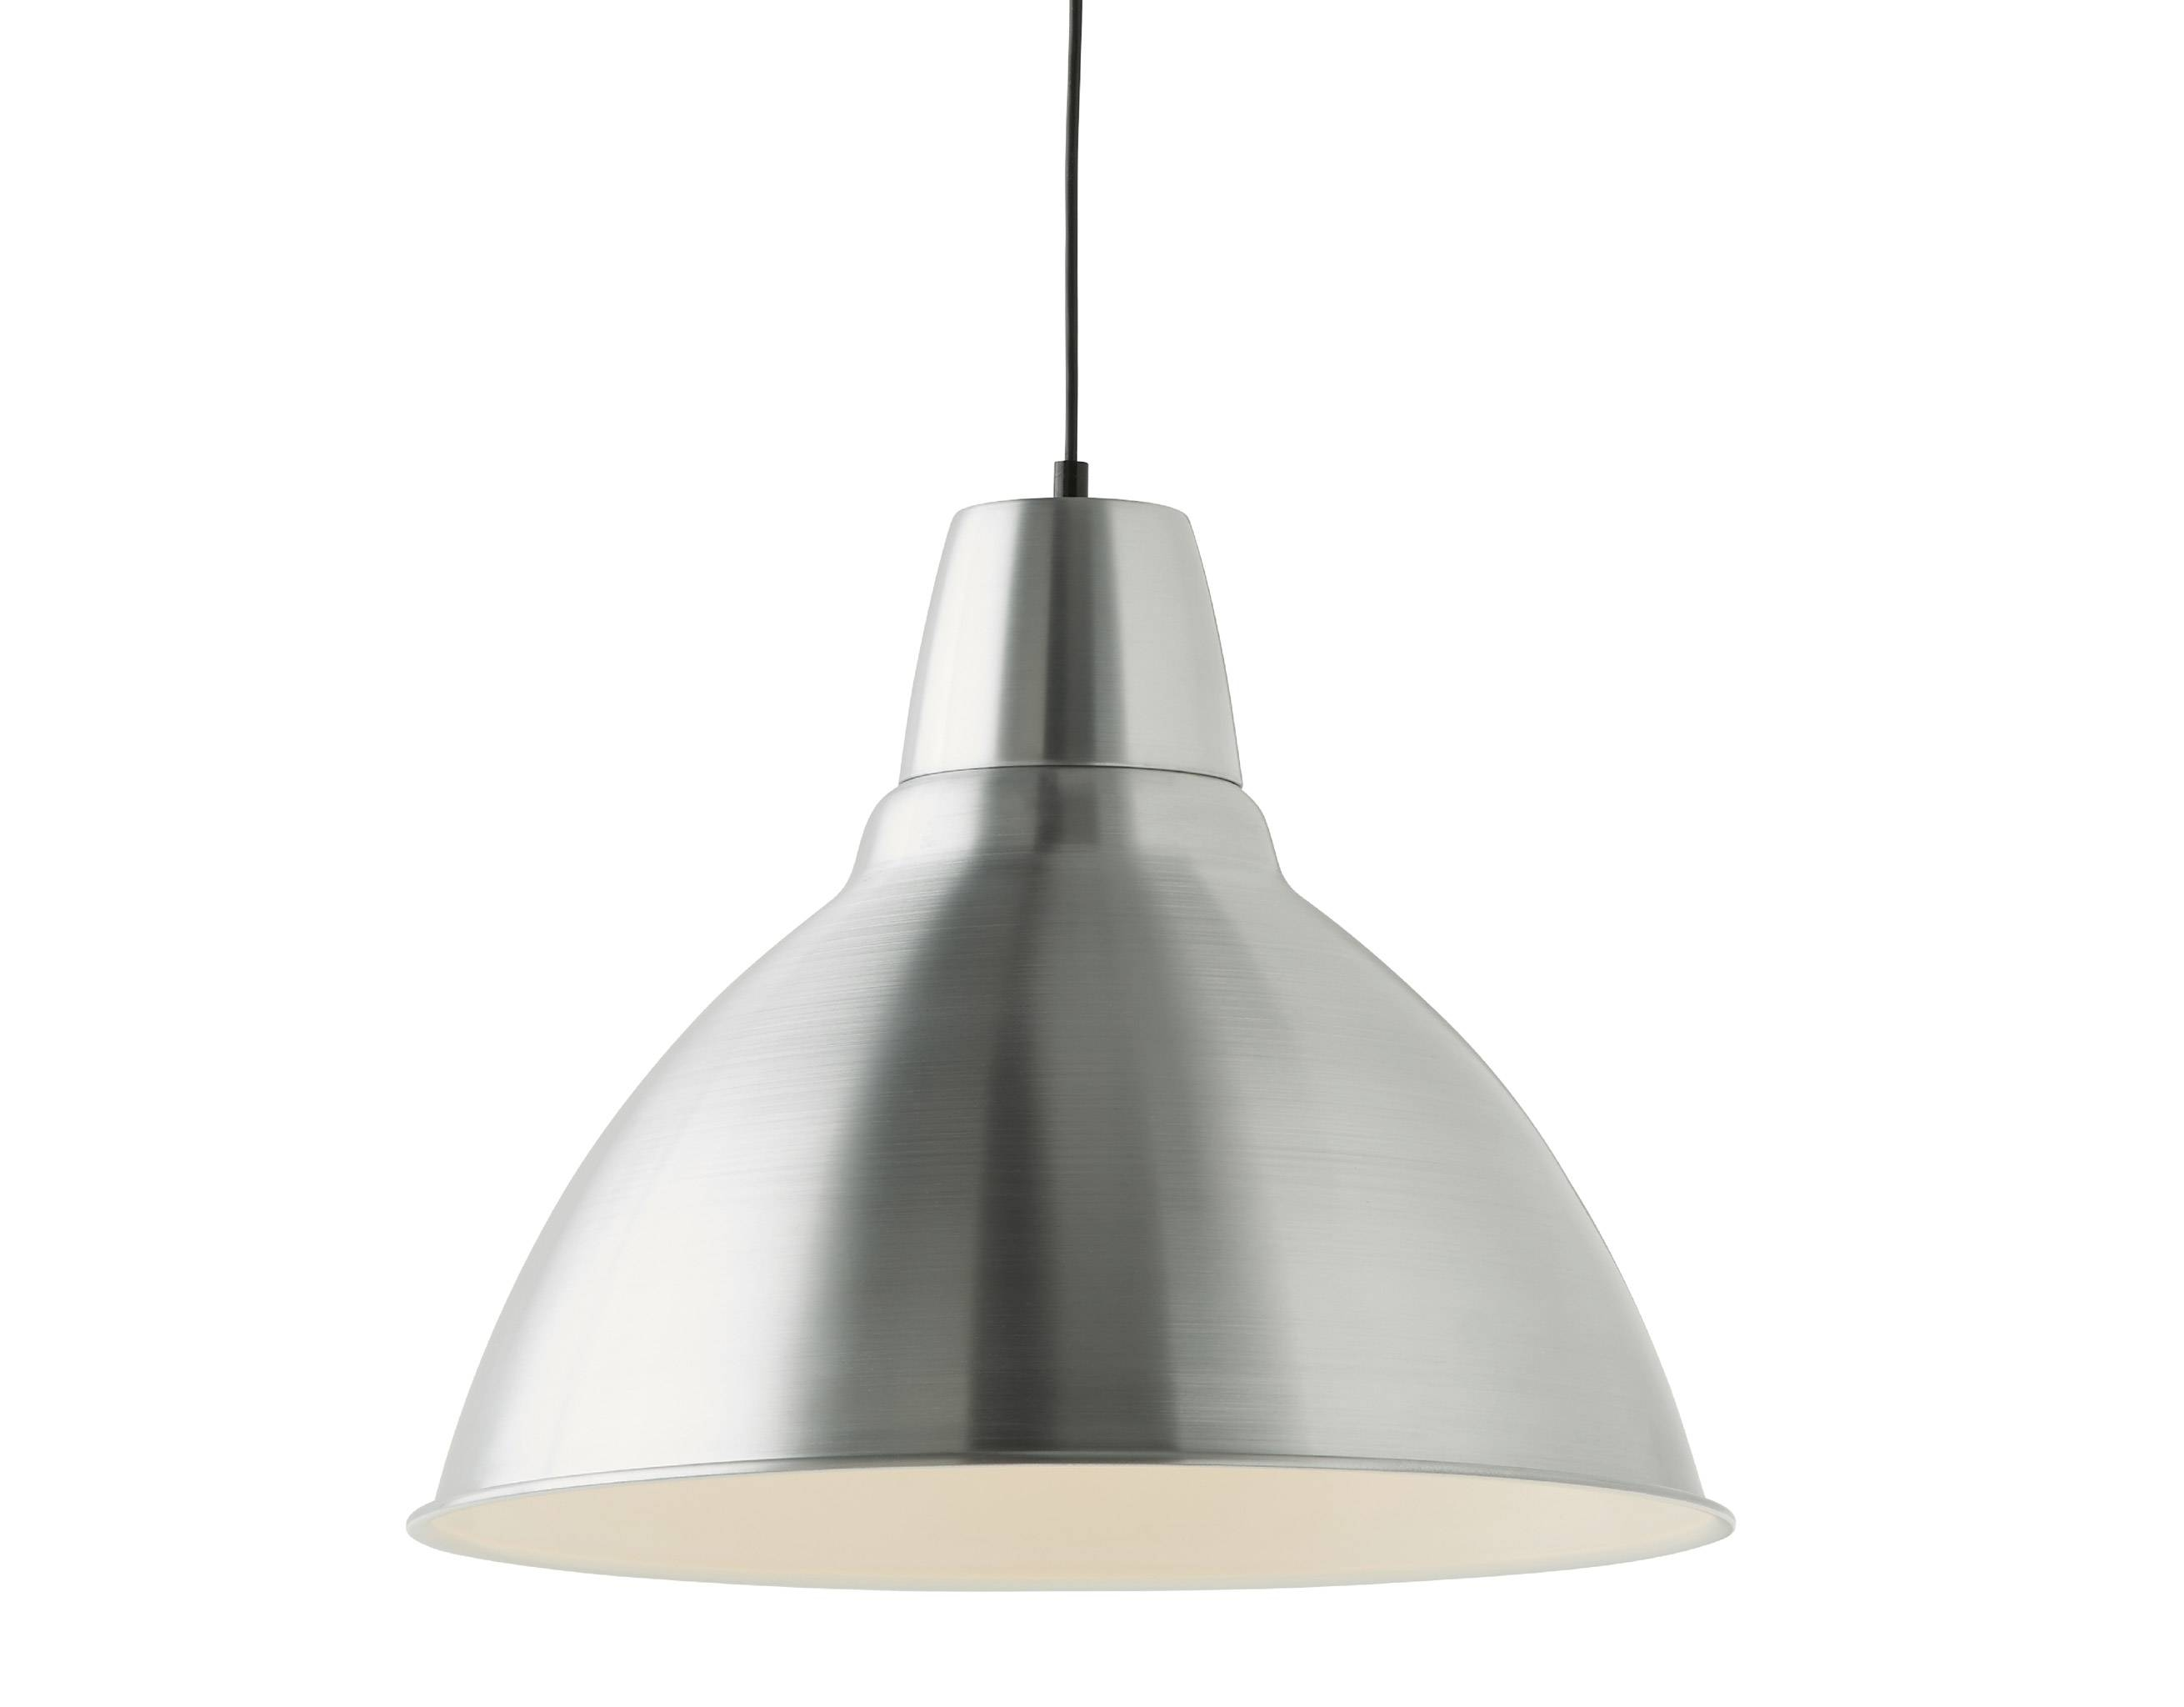 Ceiling Lights & Led Ceiling Lights | Ikea with regard to Pull Down Pendant Lights (Image 4 of 15)